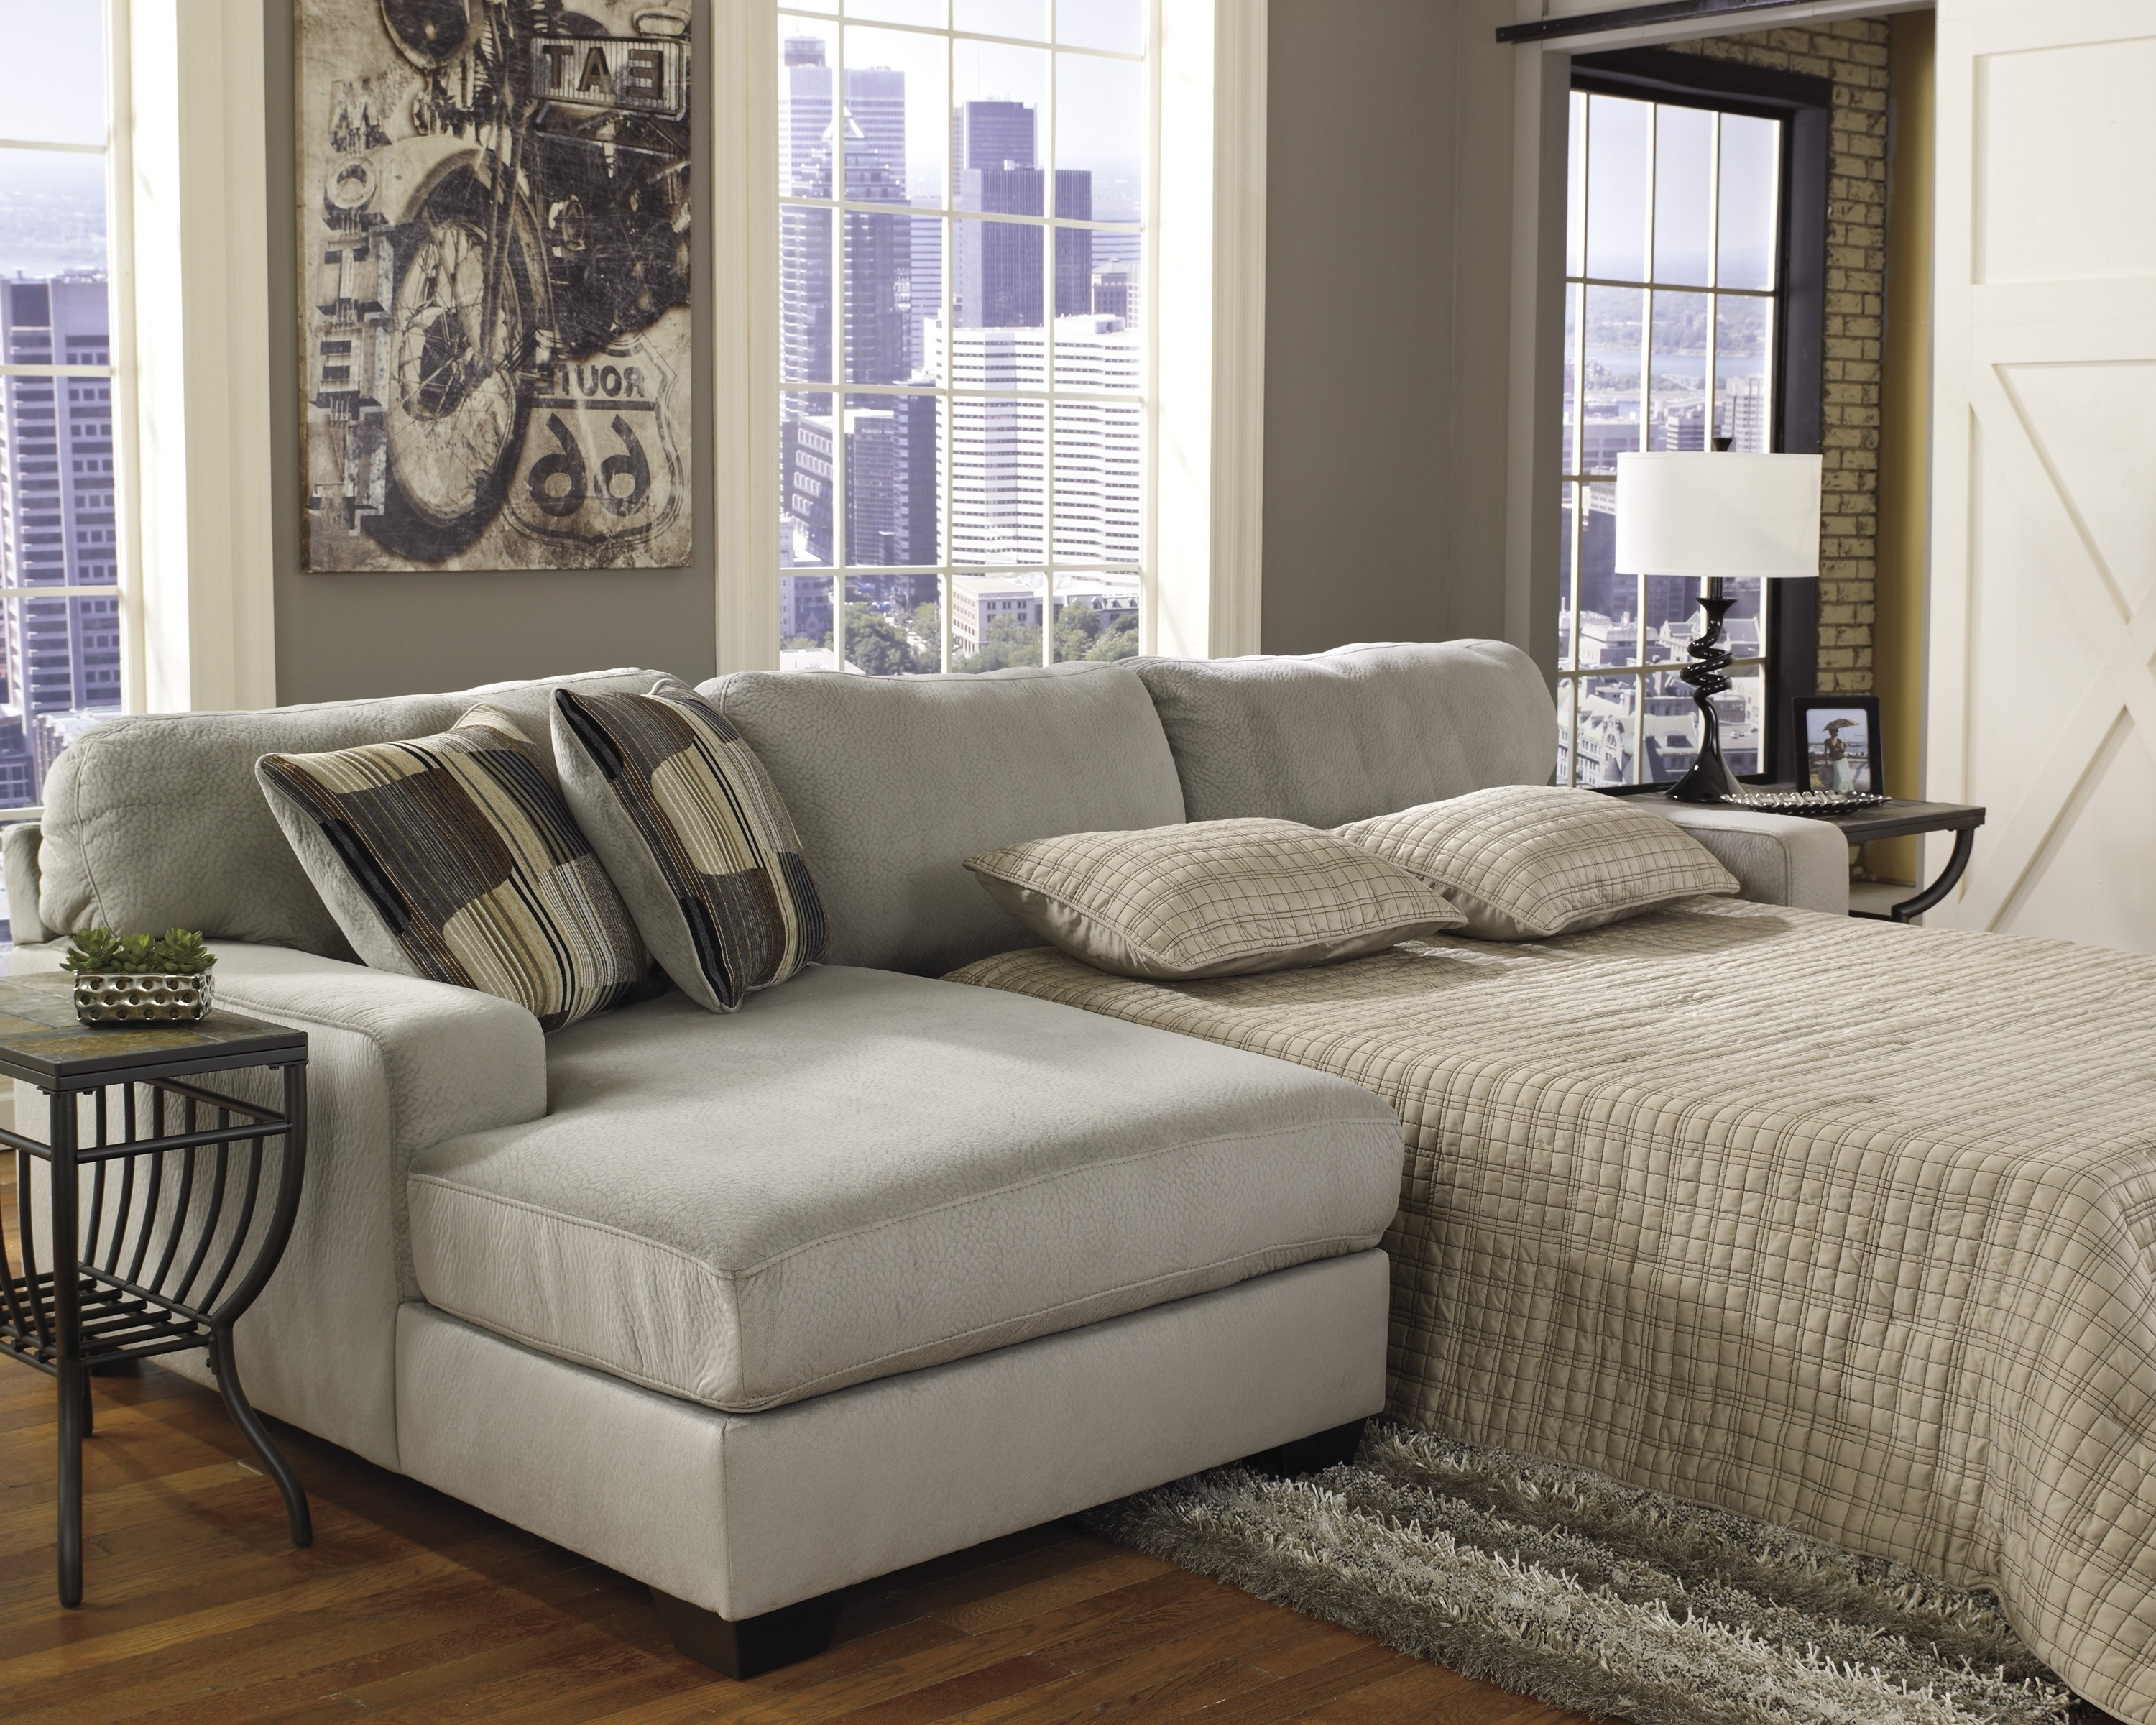 Outstanding Reclining Loveseat Set Along With Black Lear Tufted Regarding Newest Sectional Sofas In Houston Tx (View 11 of 20)